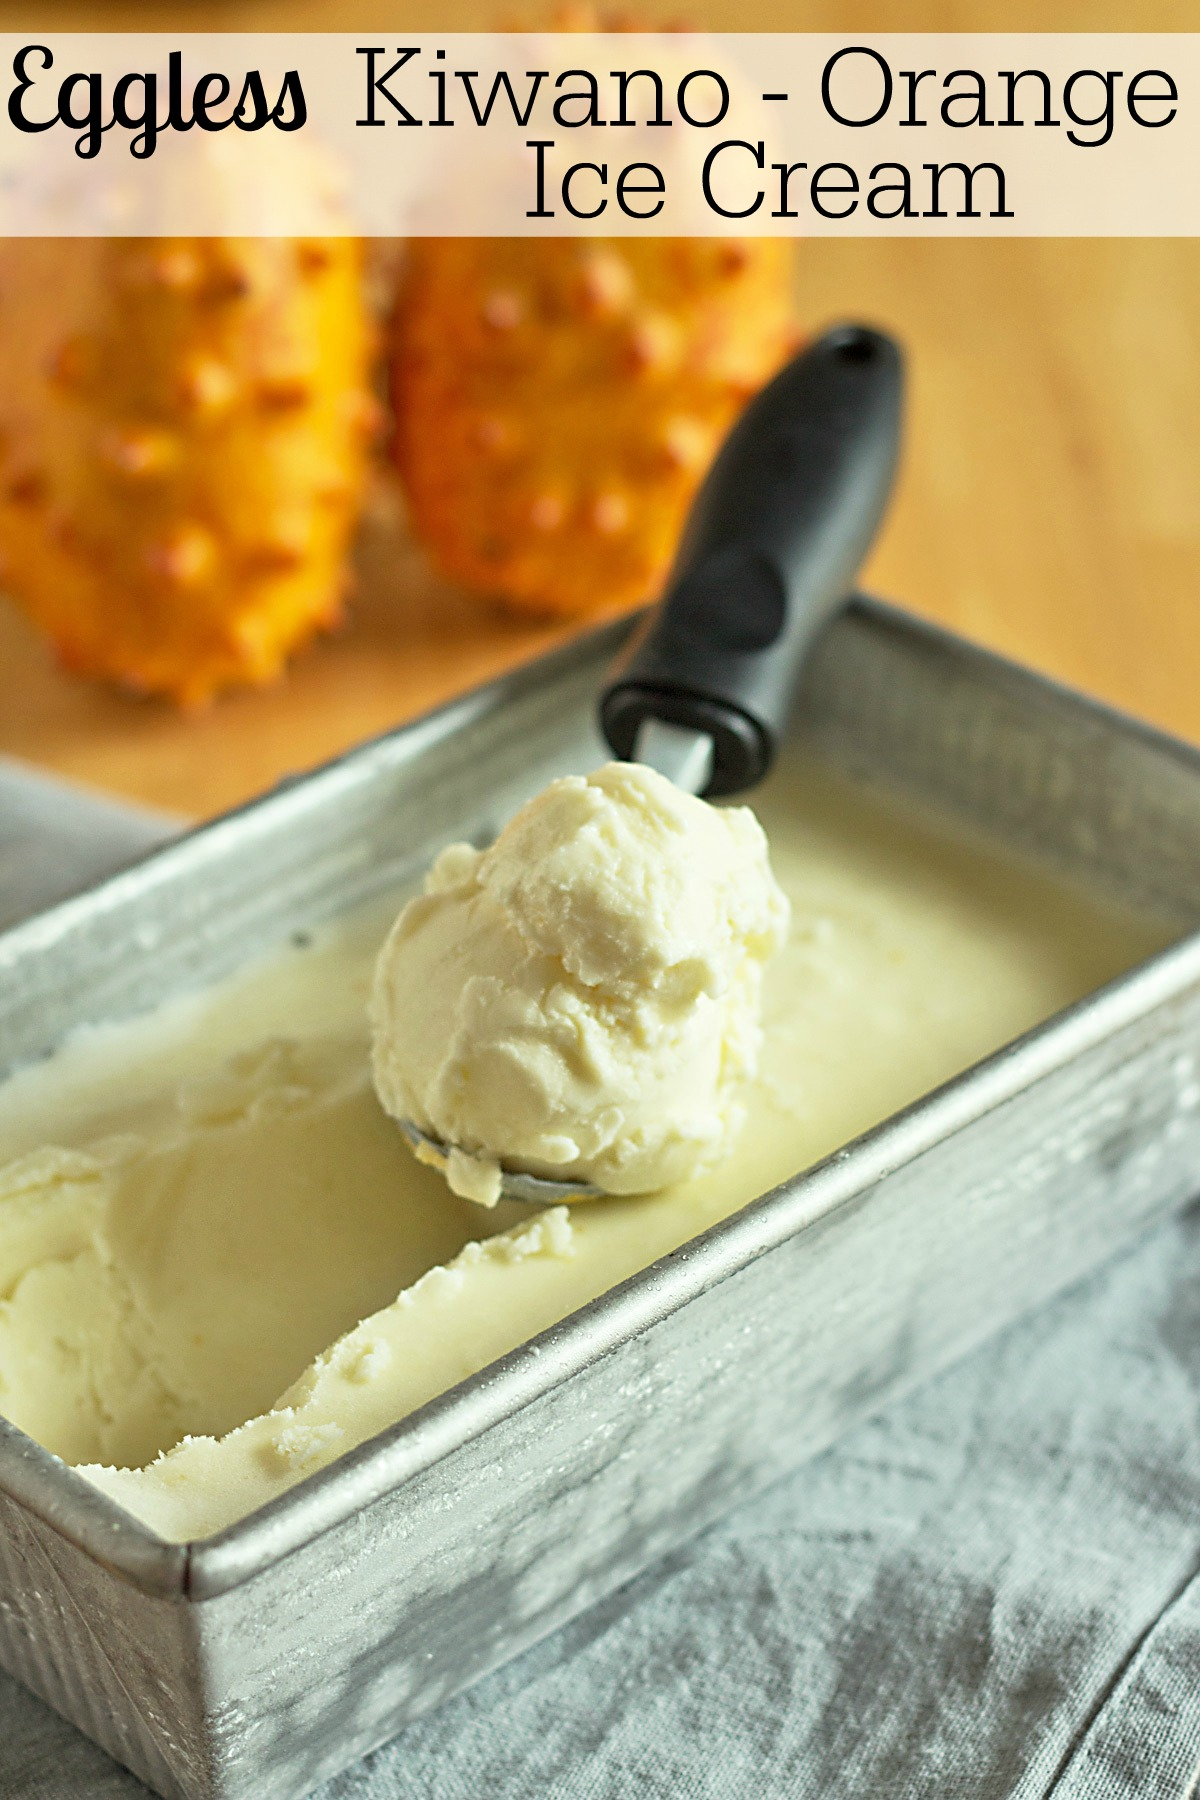 Kiwano (horned melon) and Orange Ice Cream is a homemade eggless ice cream recipe. It has the flavors of an orange Creamsicle bar! #frozendesserts #icecream #creamsicle #recipe